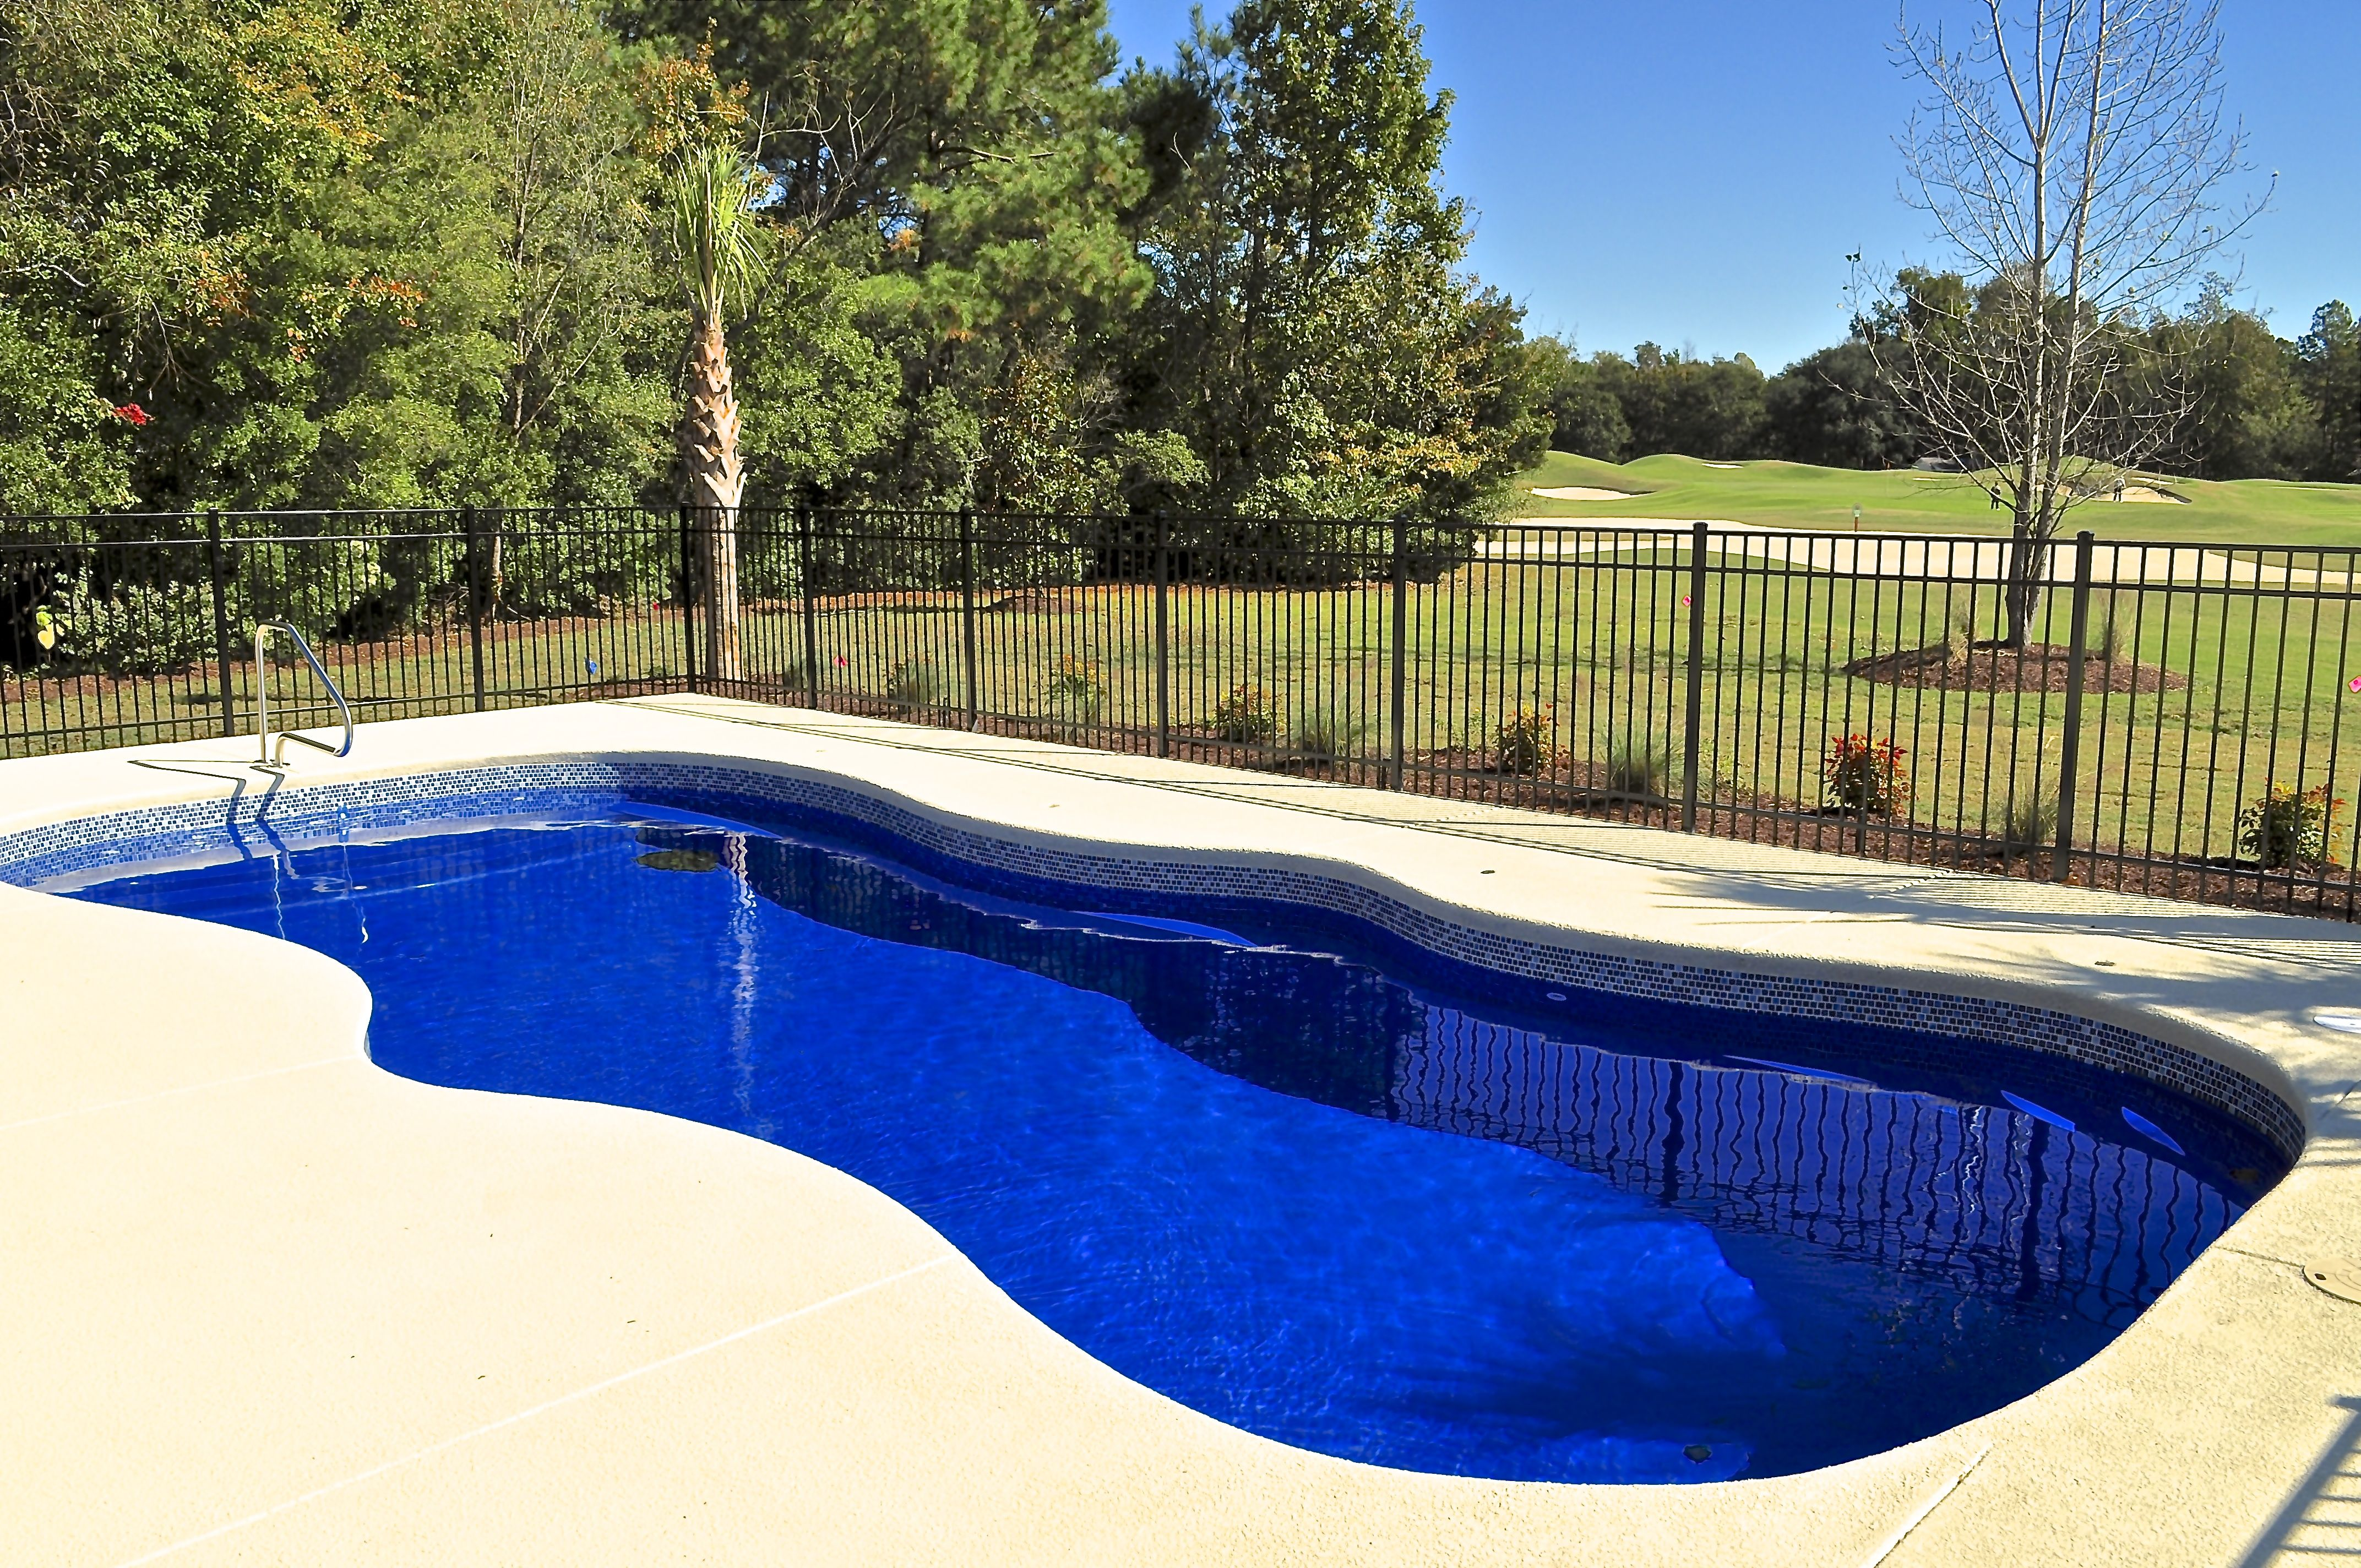 Pools4ever Is A Family Owned Fiberglass Swimming Pool Sales And Installation Company Serving Northern Virgin Pool Fiberglass Swimming Pools Swimming Pool Sales